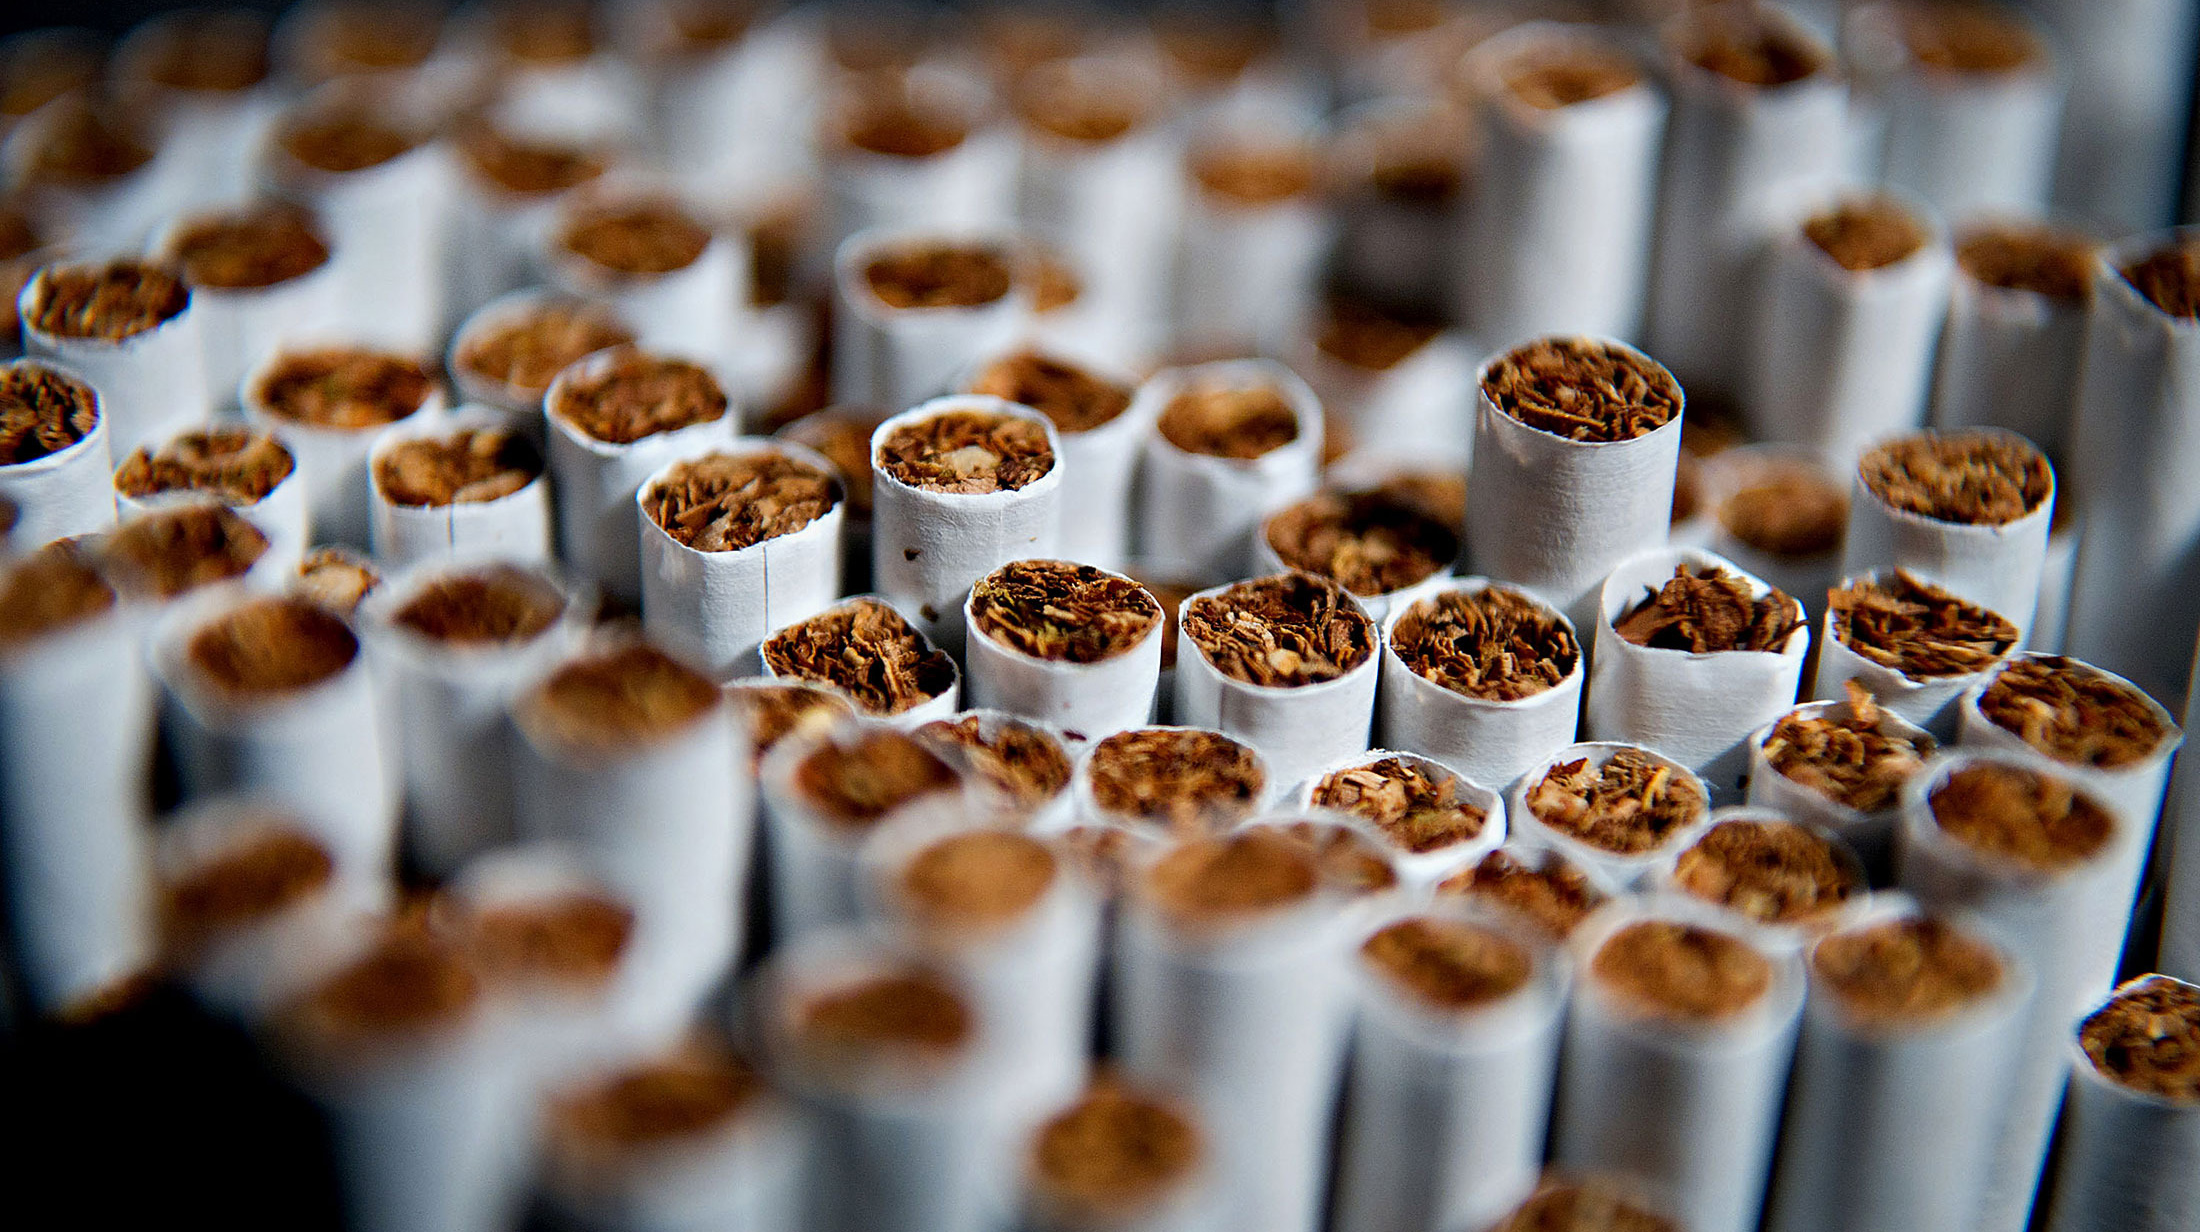 ​PIL gets filed against govt's involvement in tobacco industry